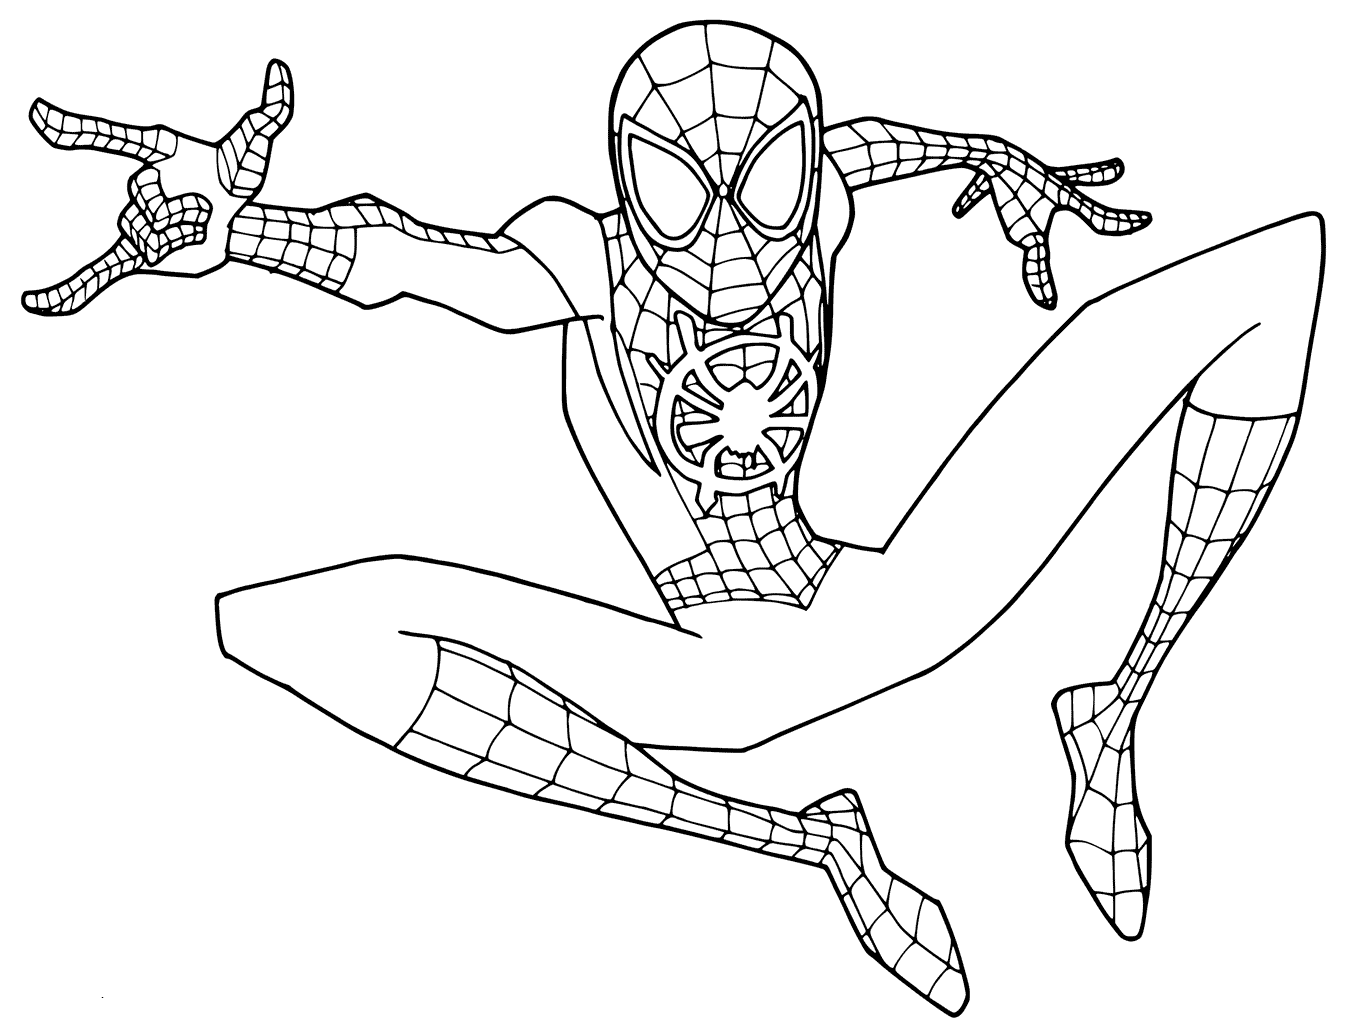 Spider Man 2018 Coloring Pages Spider Coloring Page Spiderman Coloring Superhero Coloring Pages